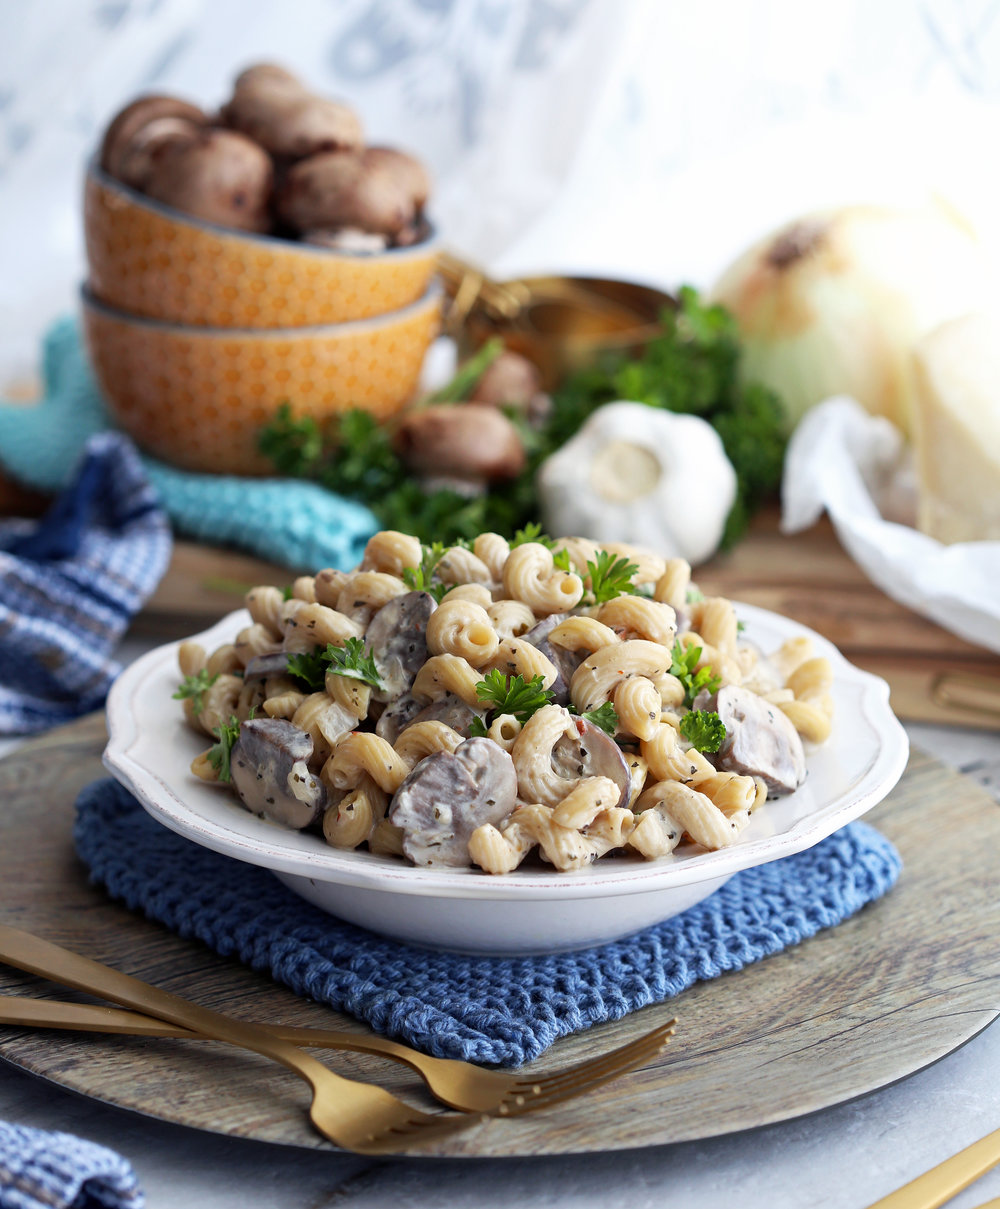 Cavatappi pasta and cremini mushrooms in a creamy parmesan sauce that's garnished with fresh parsley in a white pasta bowl.